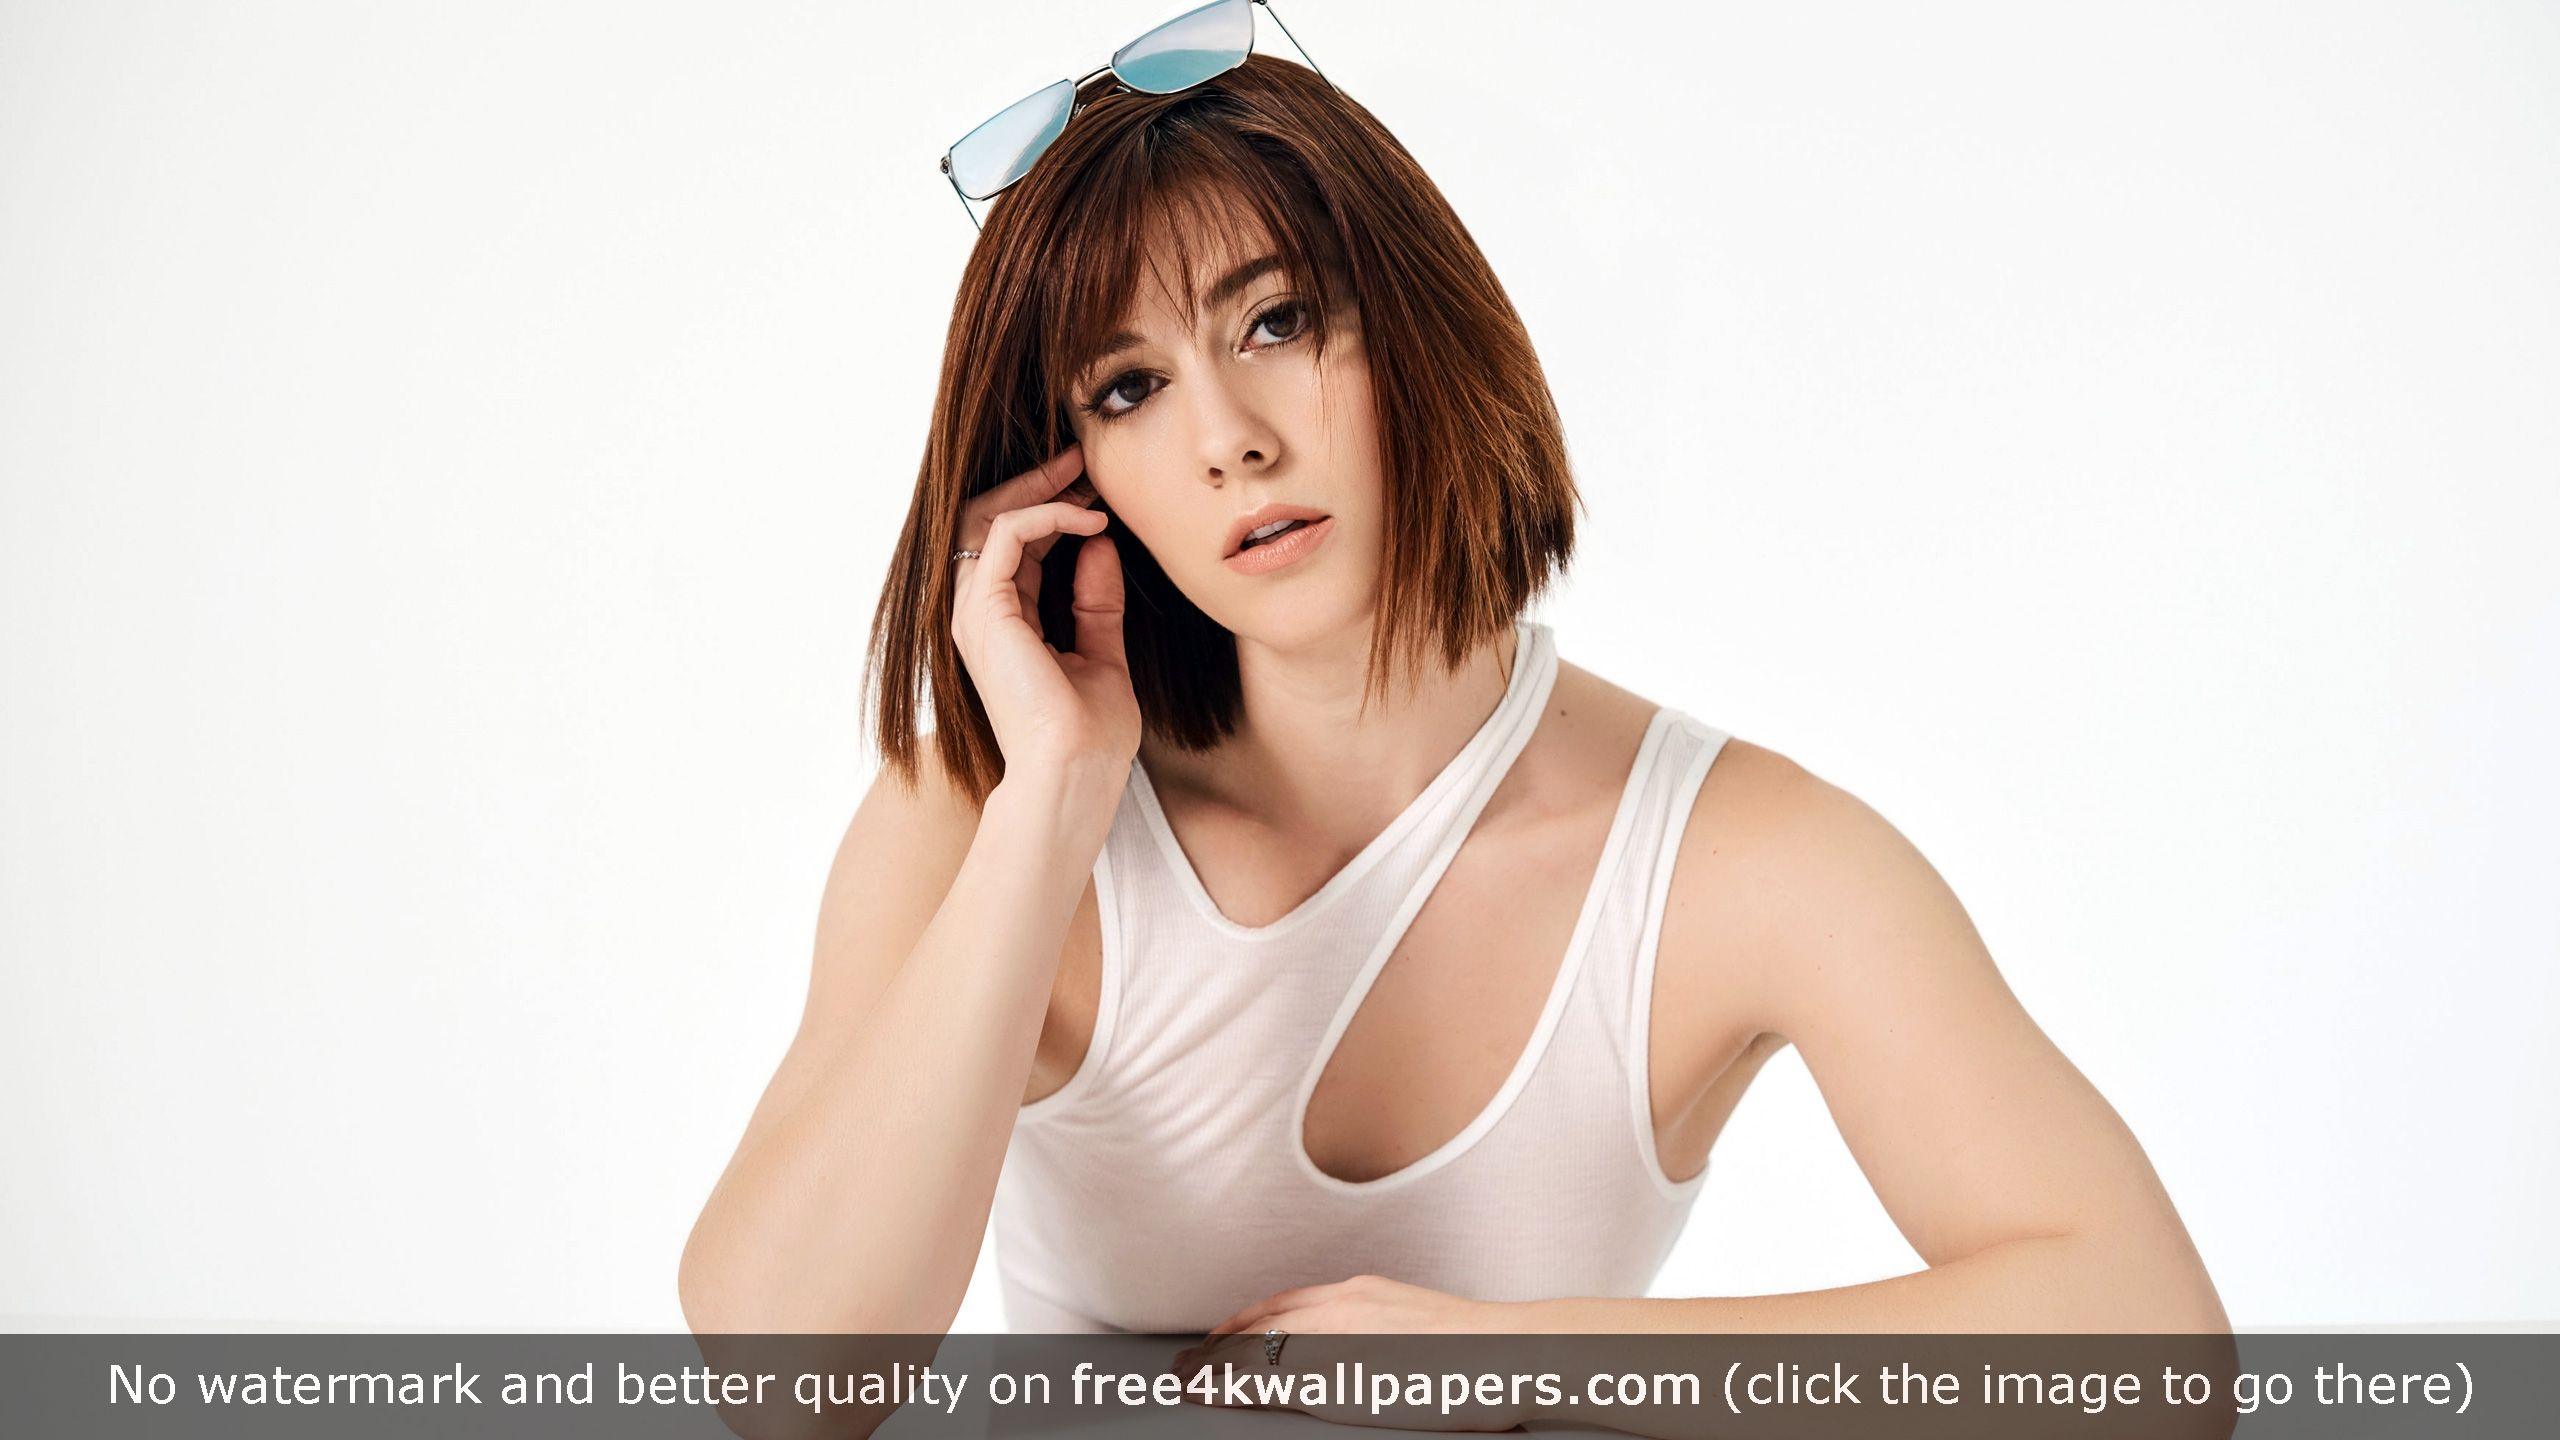 mary elizabeth winstead 2016 hd wallpaper | desktop wallpapers